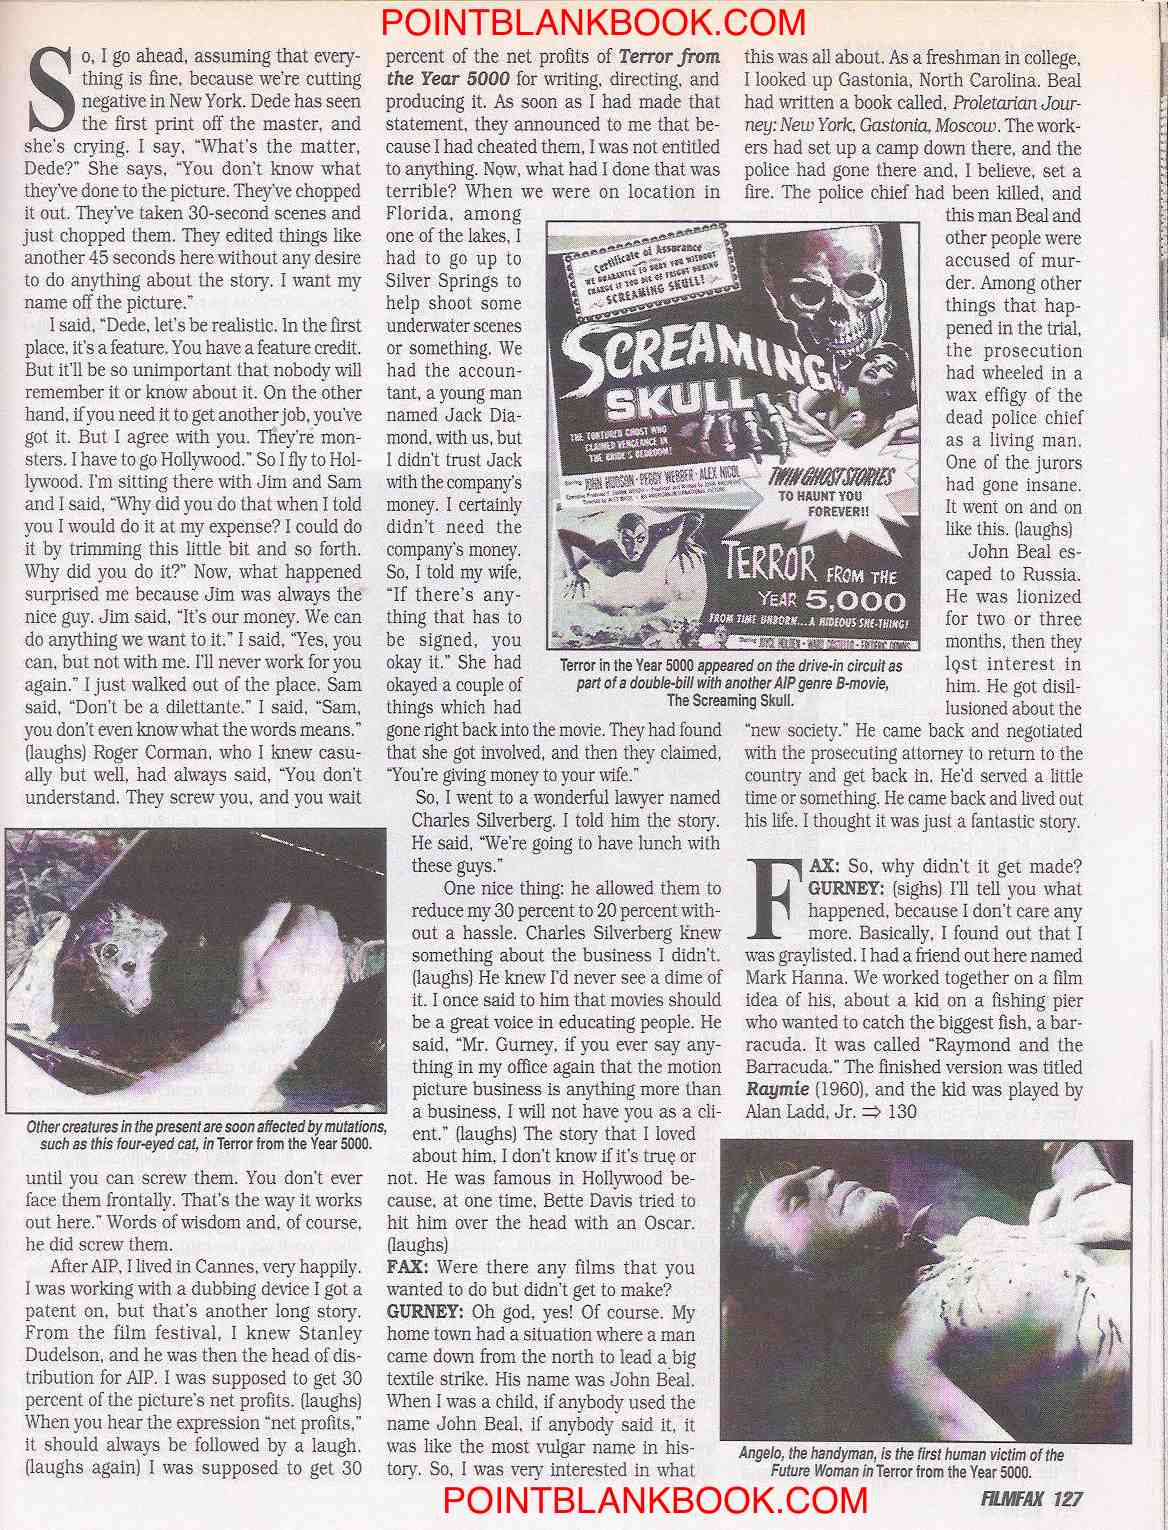 Robert Gurney Filmfax interview, page 12.